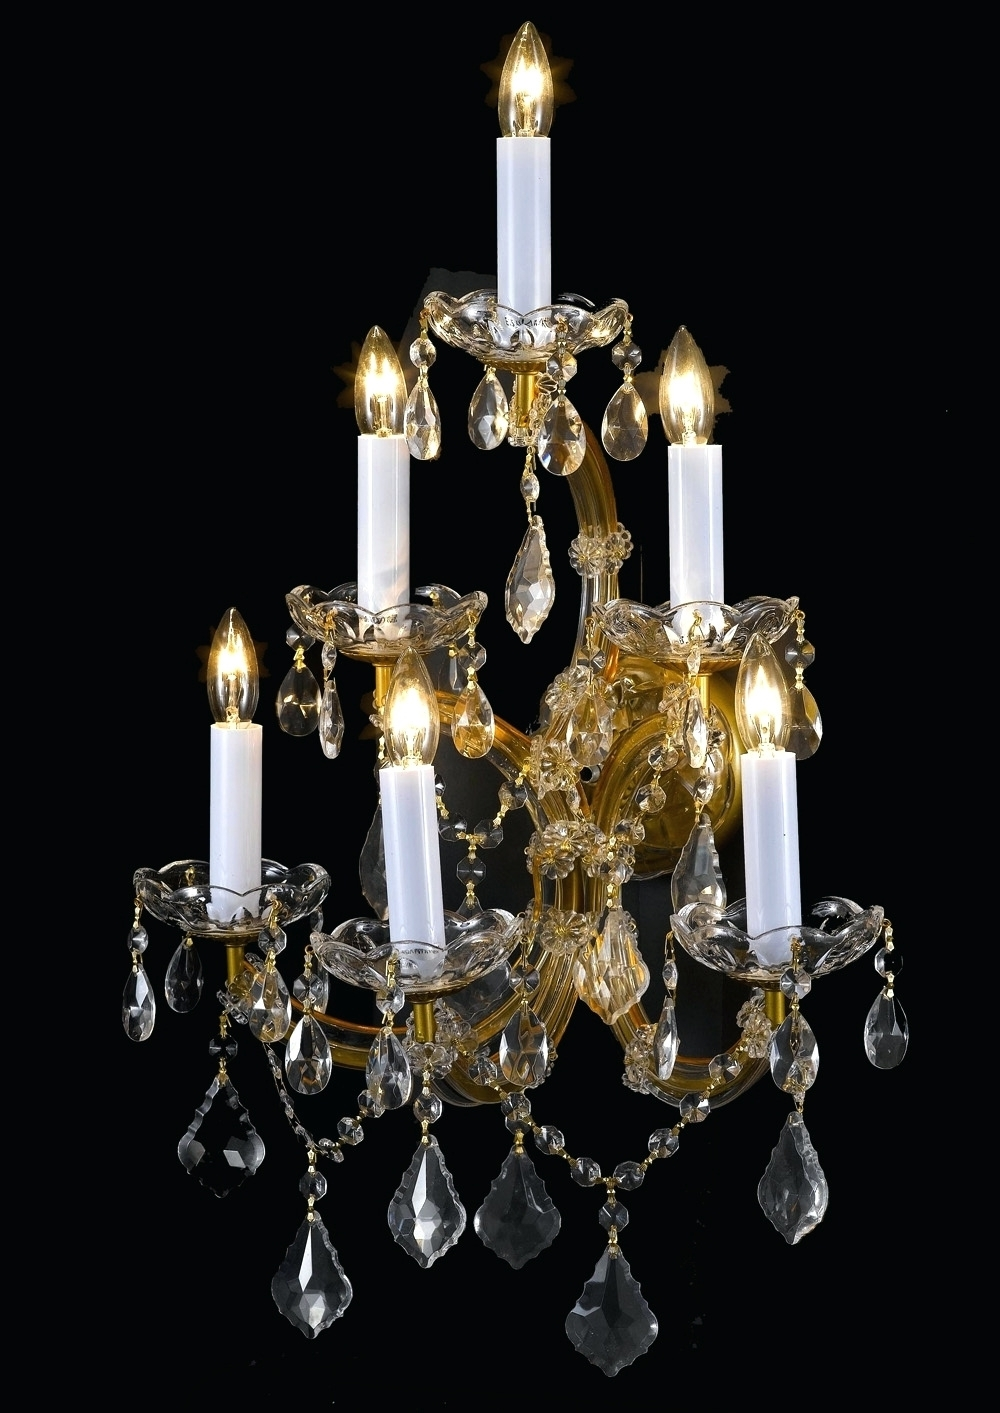 Chandeliers ~ Crystal Chandelier Wall Sconces A83 6 66 Wall Sconces Pertaining To Popular Black Chandelier Wall Lights (View 7 of 15)